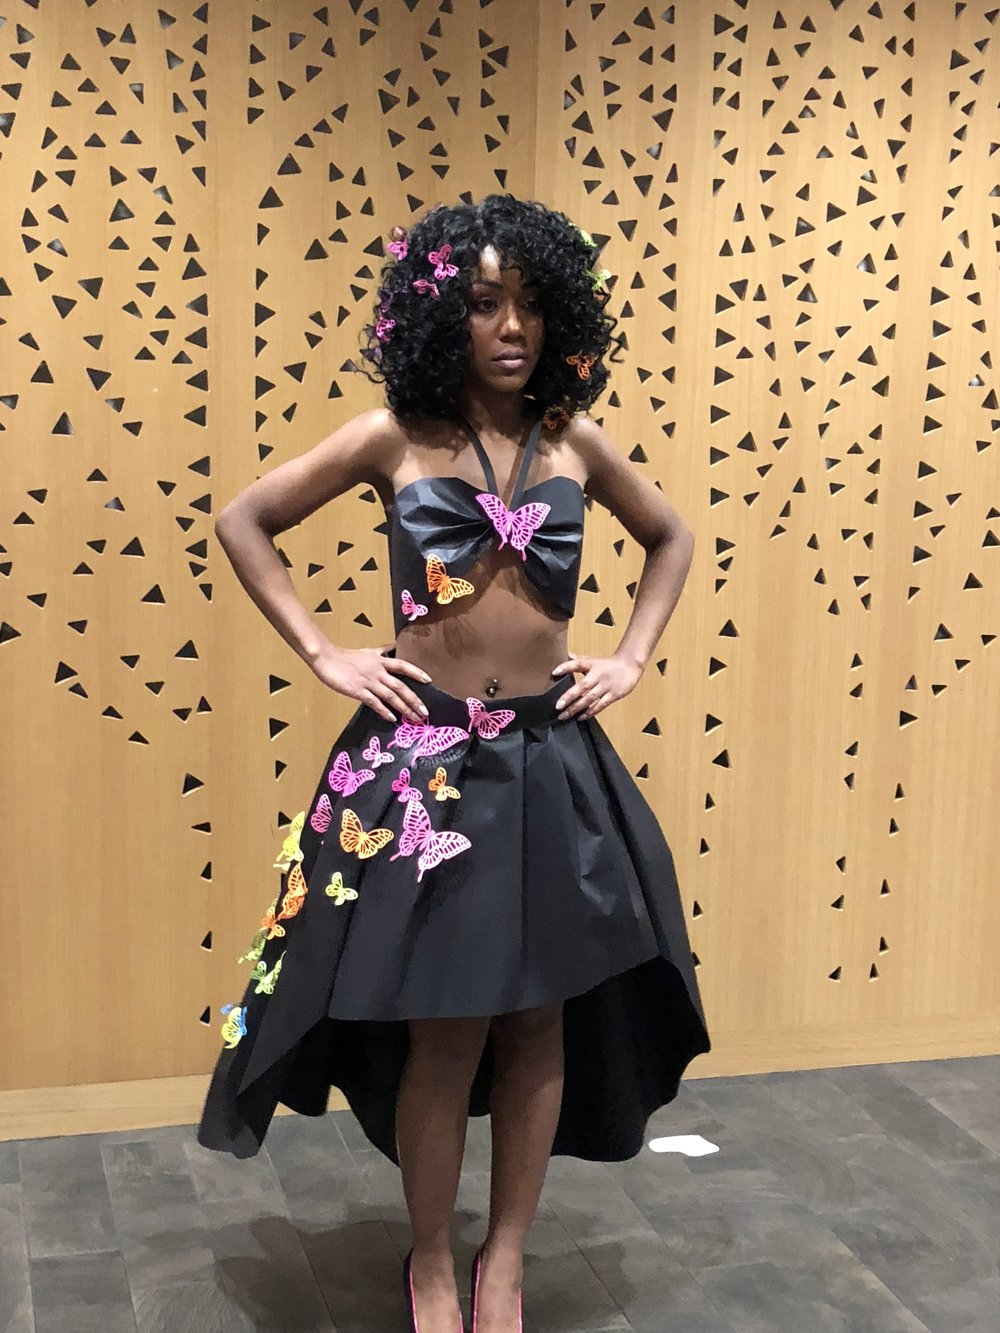 This is Valencia Hill, the model who wore and walked my paper dress down the runway